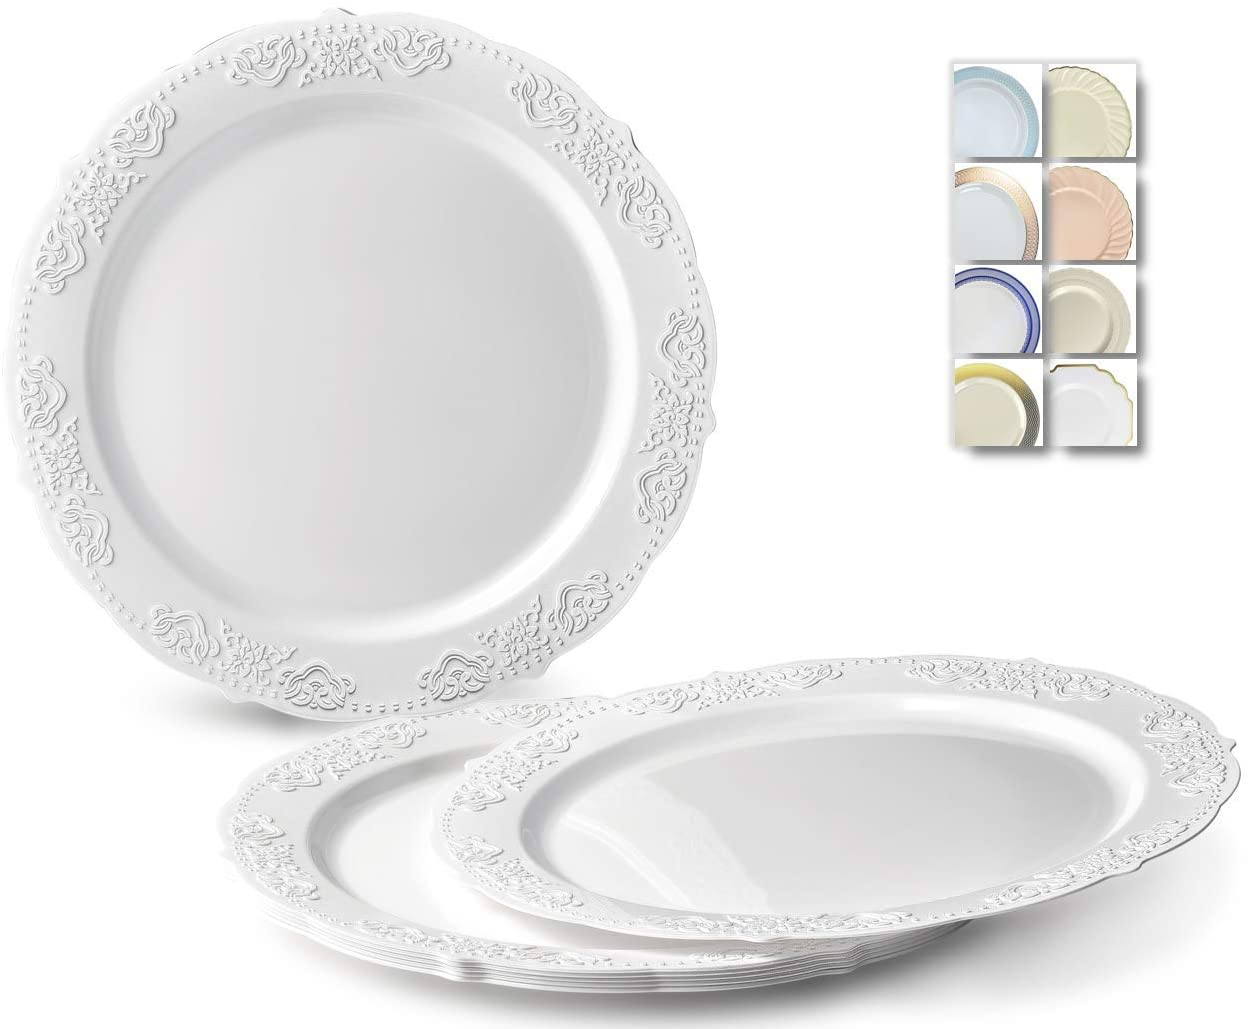 OCCASIONS 120 Plates Pack, Vintage Style, Disposable Wedding Party Plastic Plates (10.25'' Dinner Plate, Portofino Plain White) 61-YccRjs6L